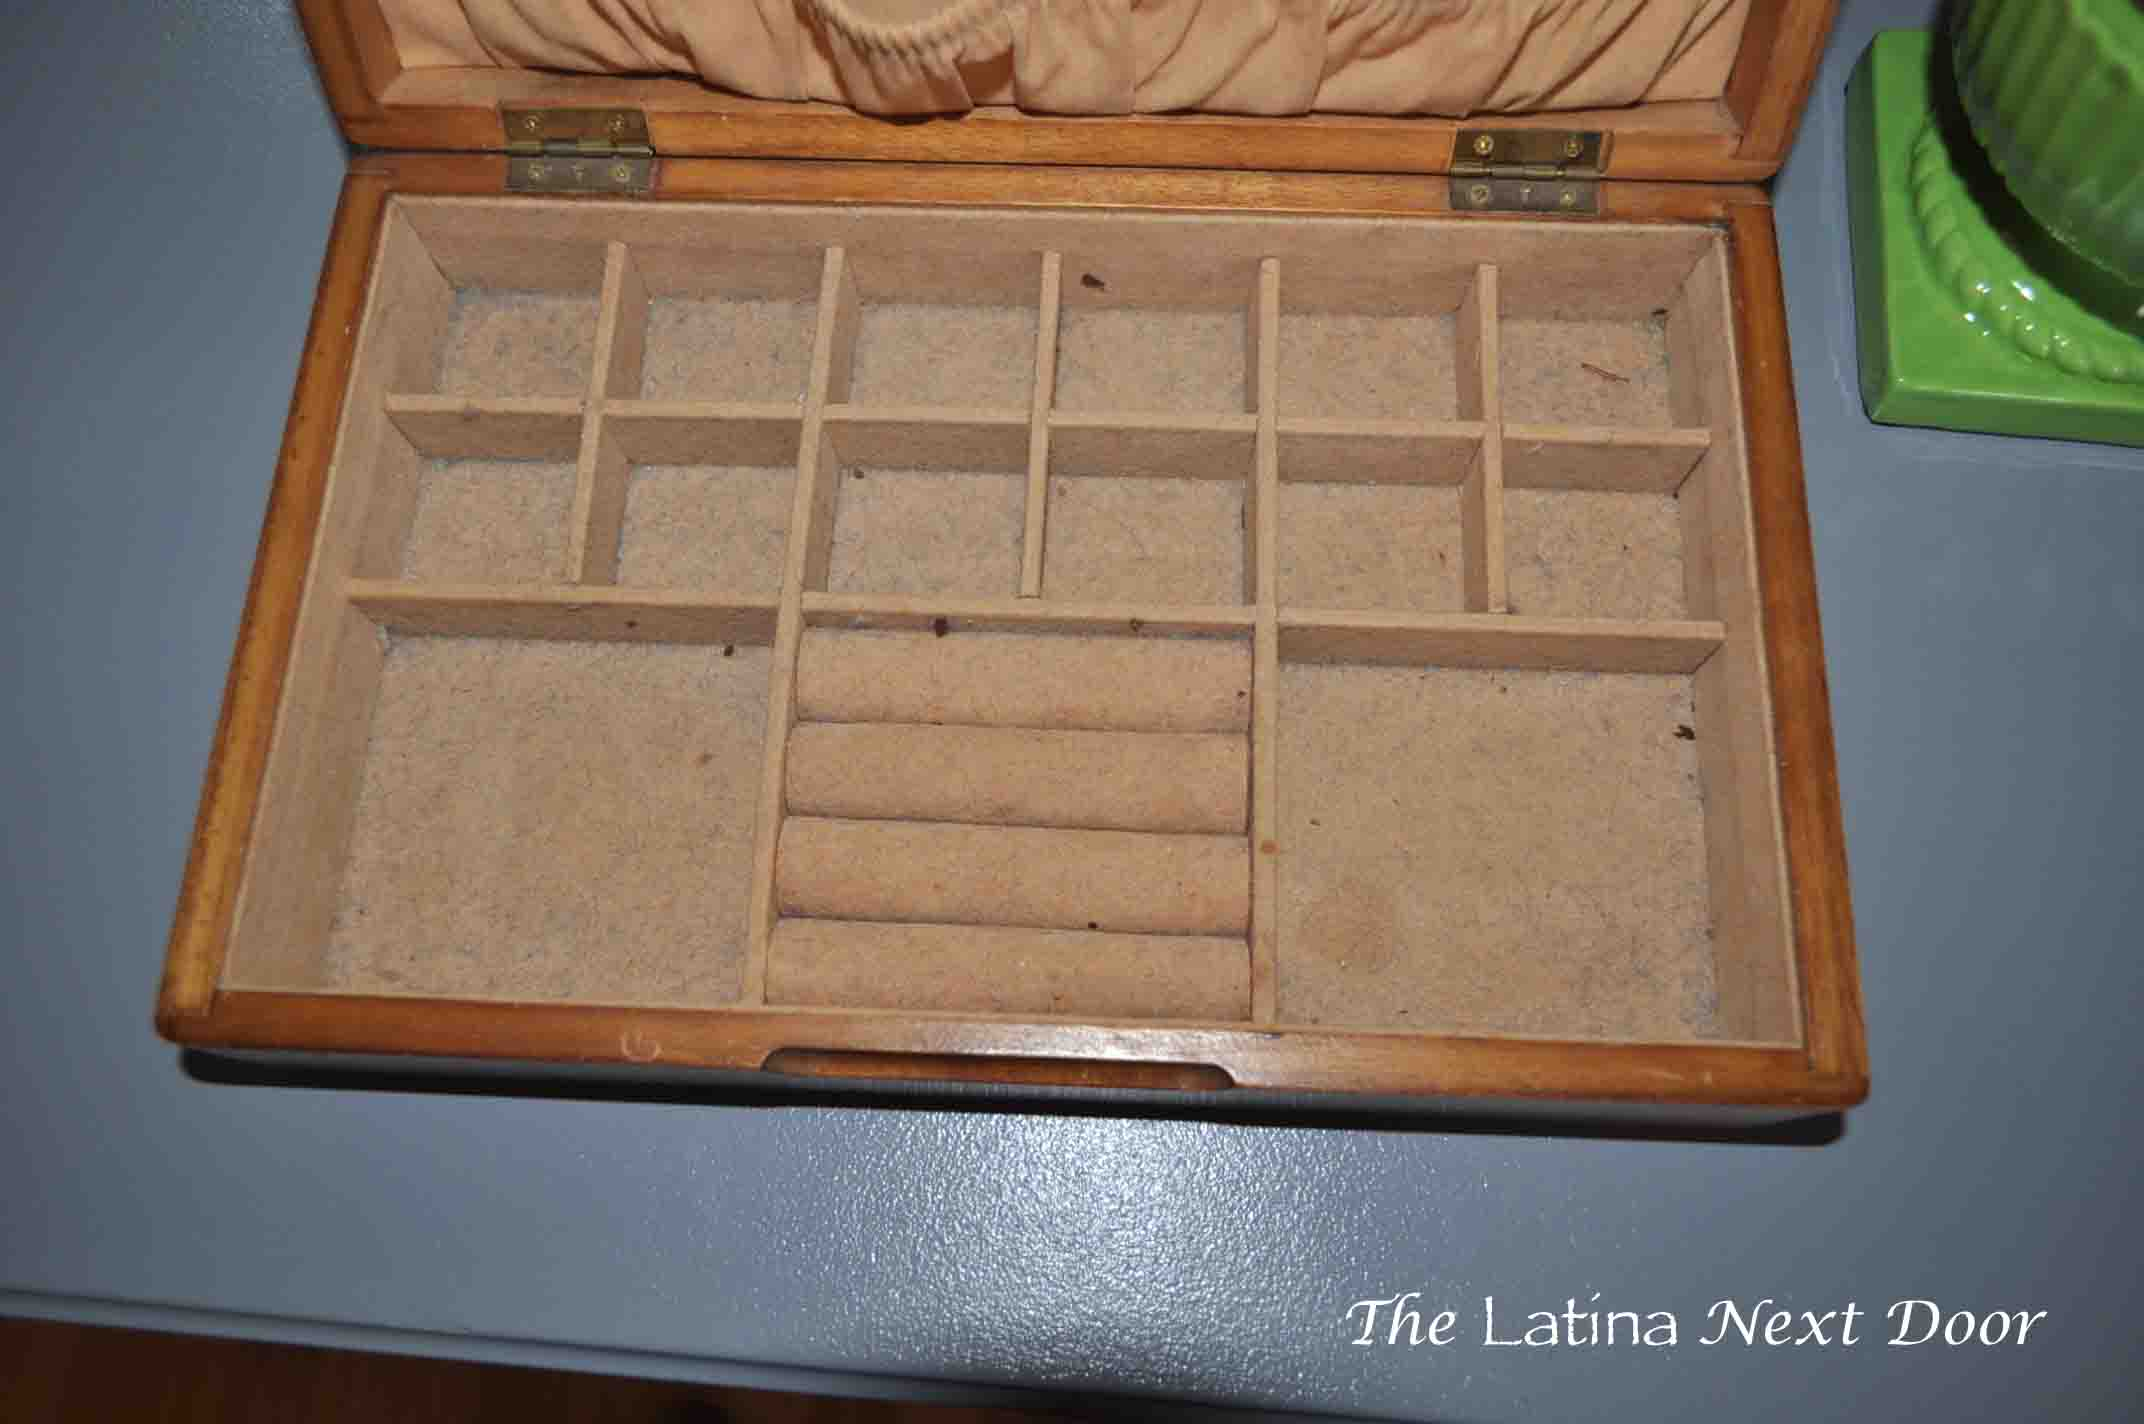 DIY Jewelry Box Makeover 3 Goodwill Jewelry Box Makeover for Under $6